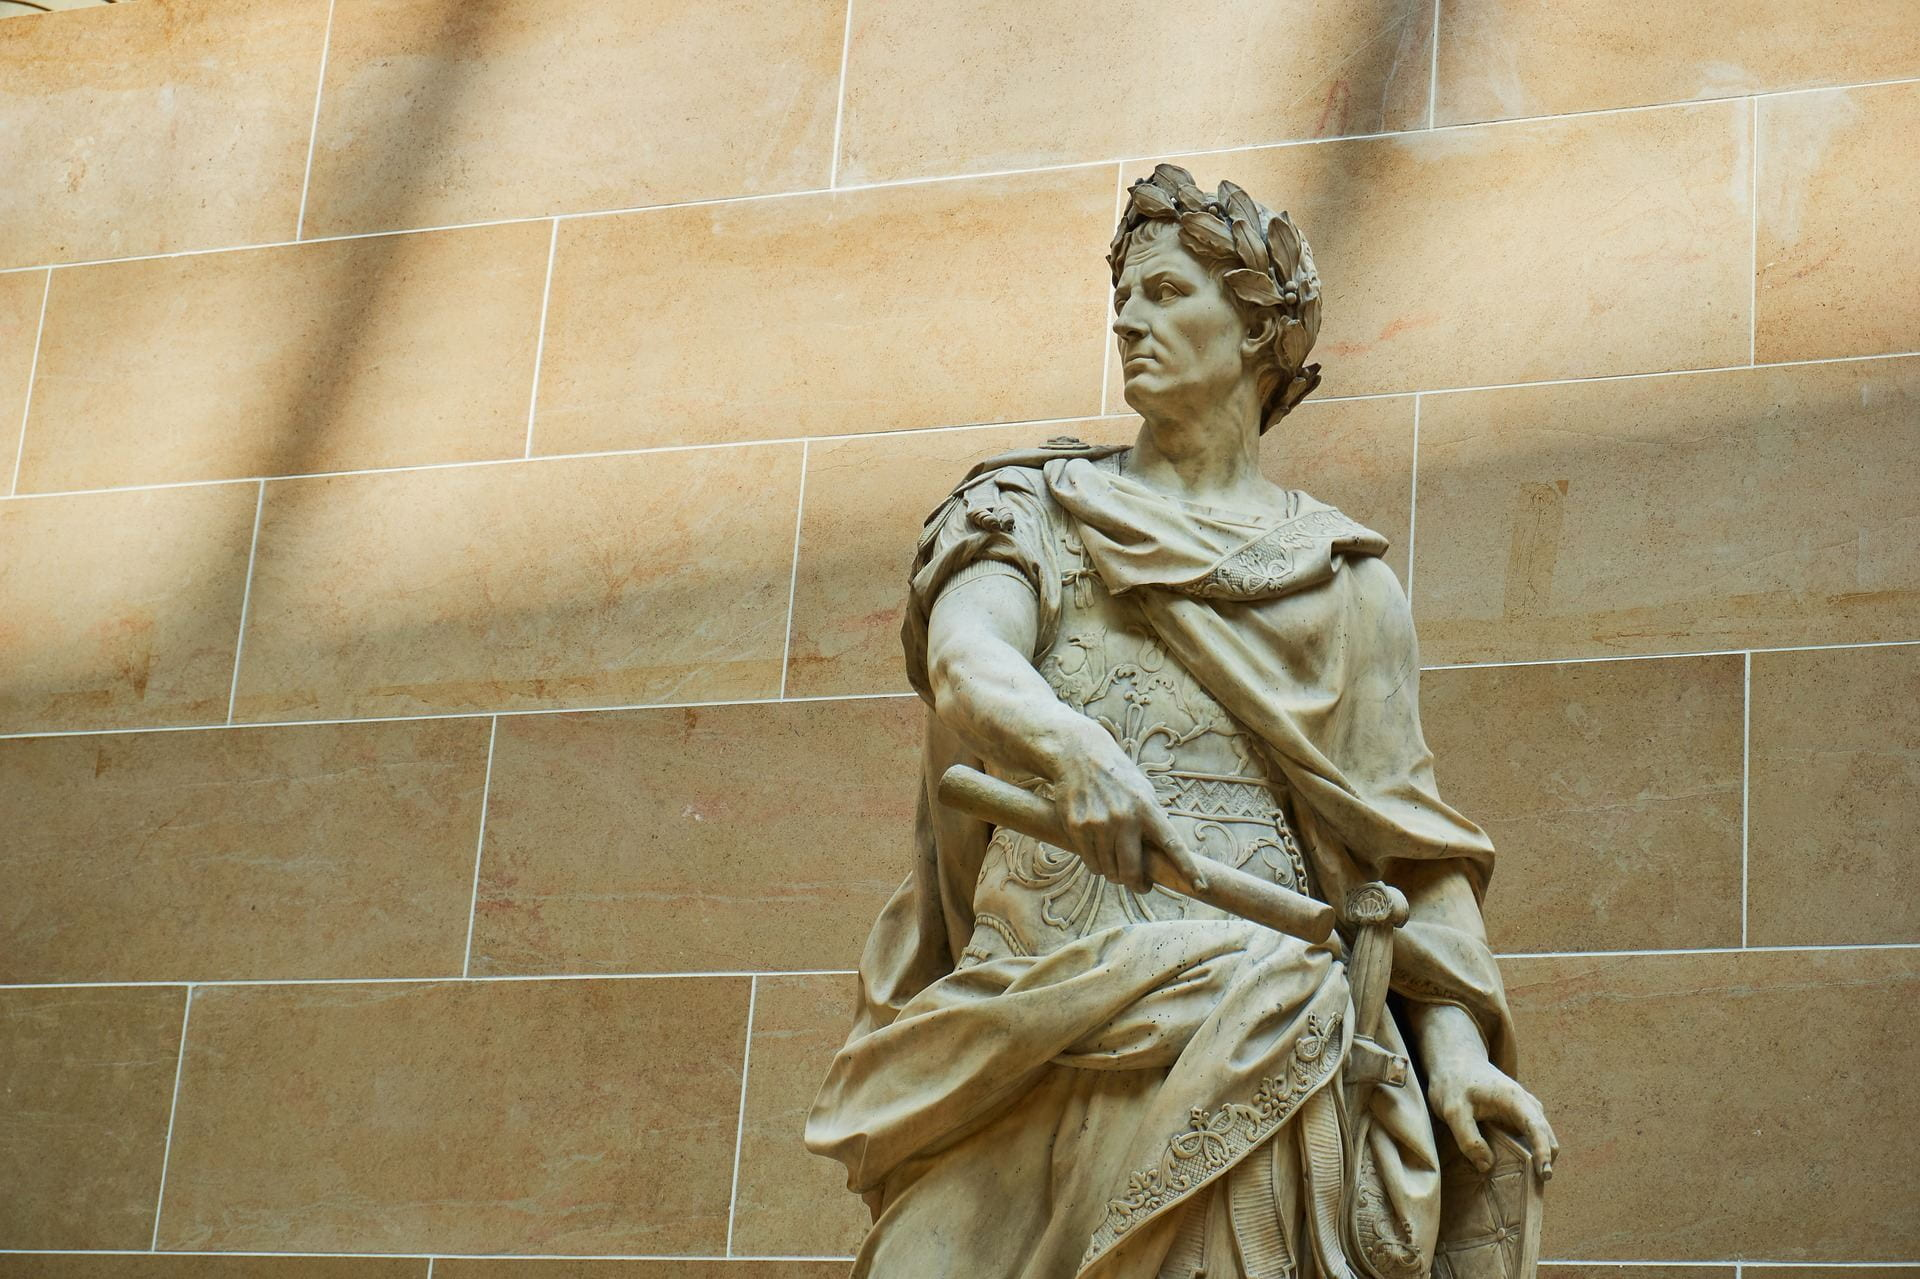 Pictured is the Julius Caesar statue in the Louvre.